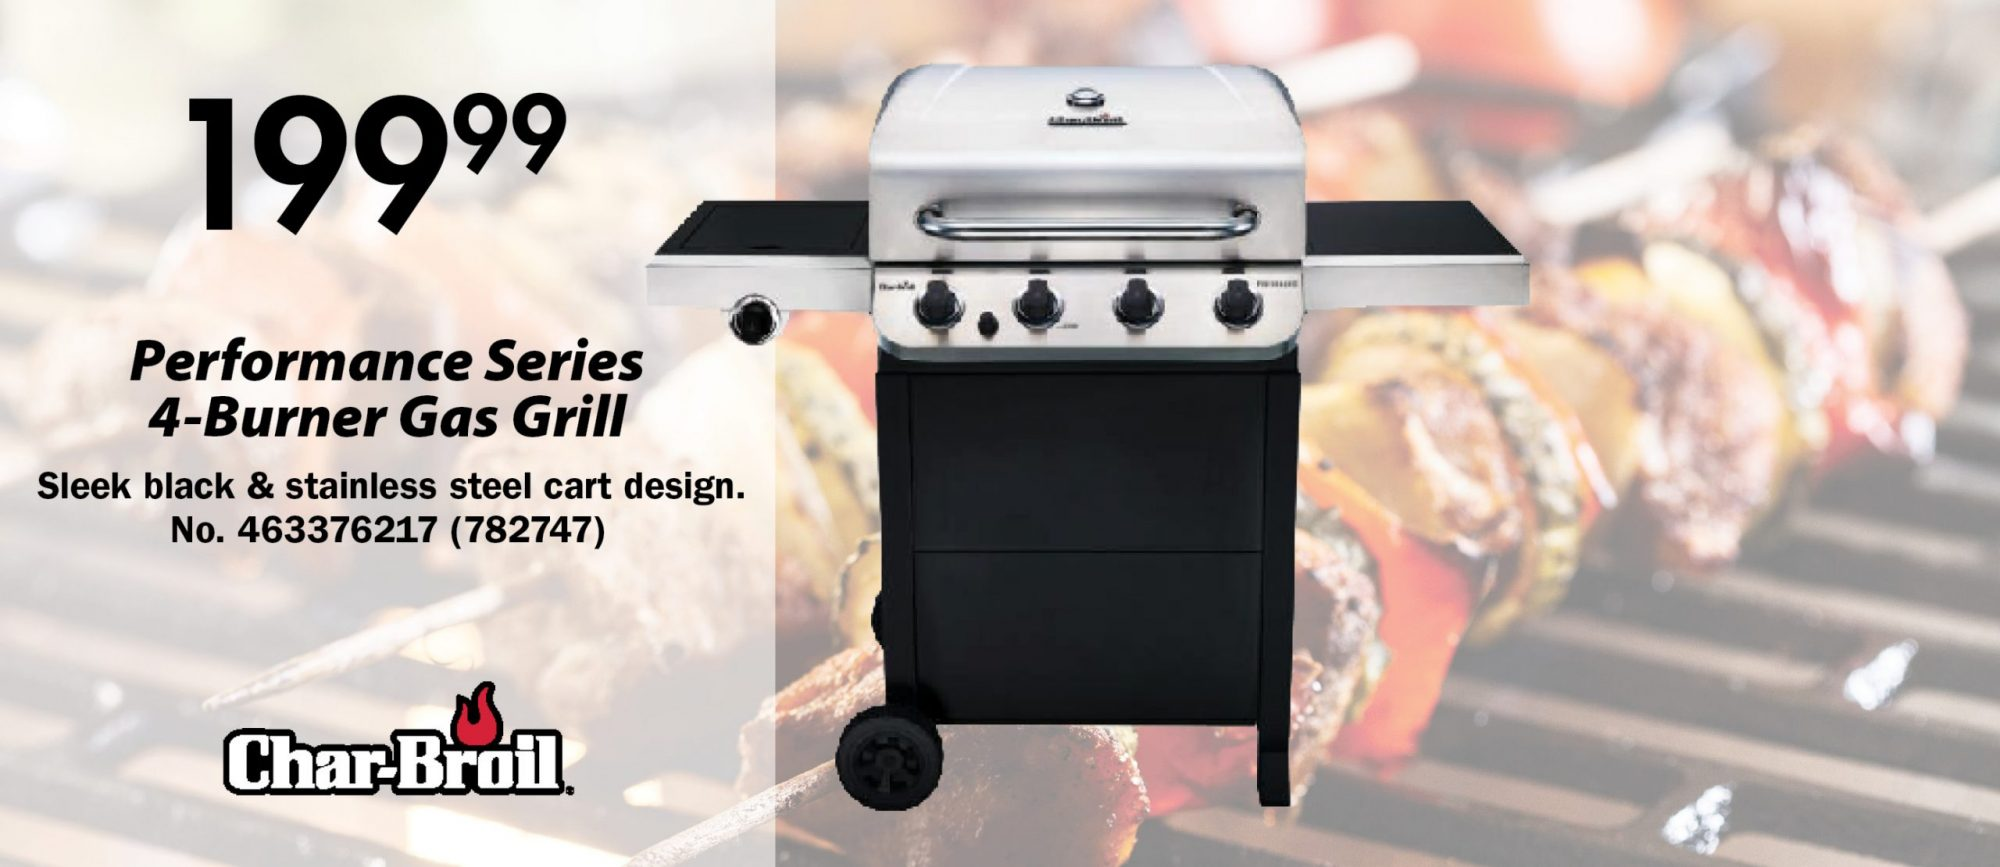 $199.99  Performance  Series 4-Burner Gas Grill Sleek black & stainless  steel cart design. No. 463376217 (782747)